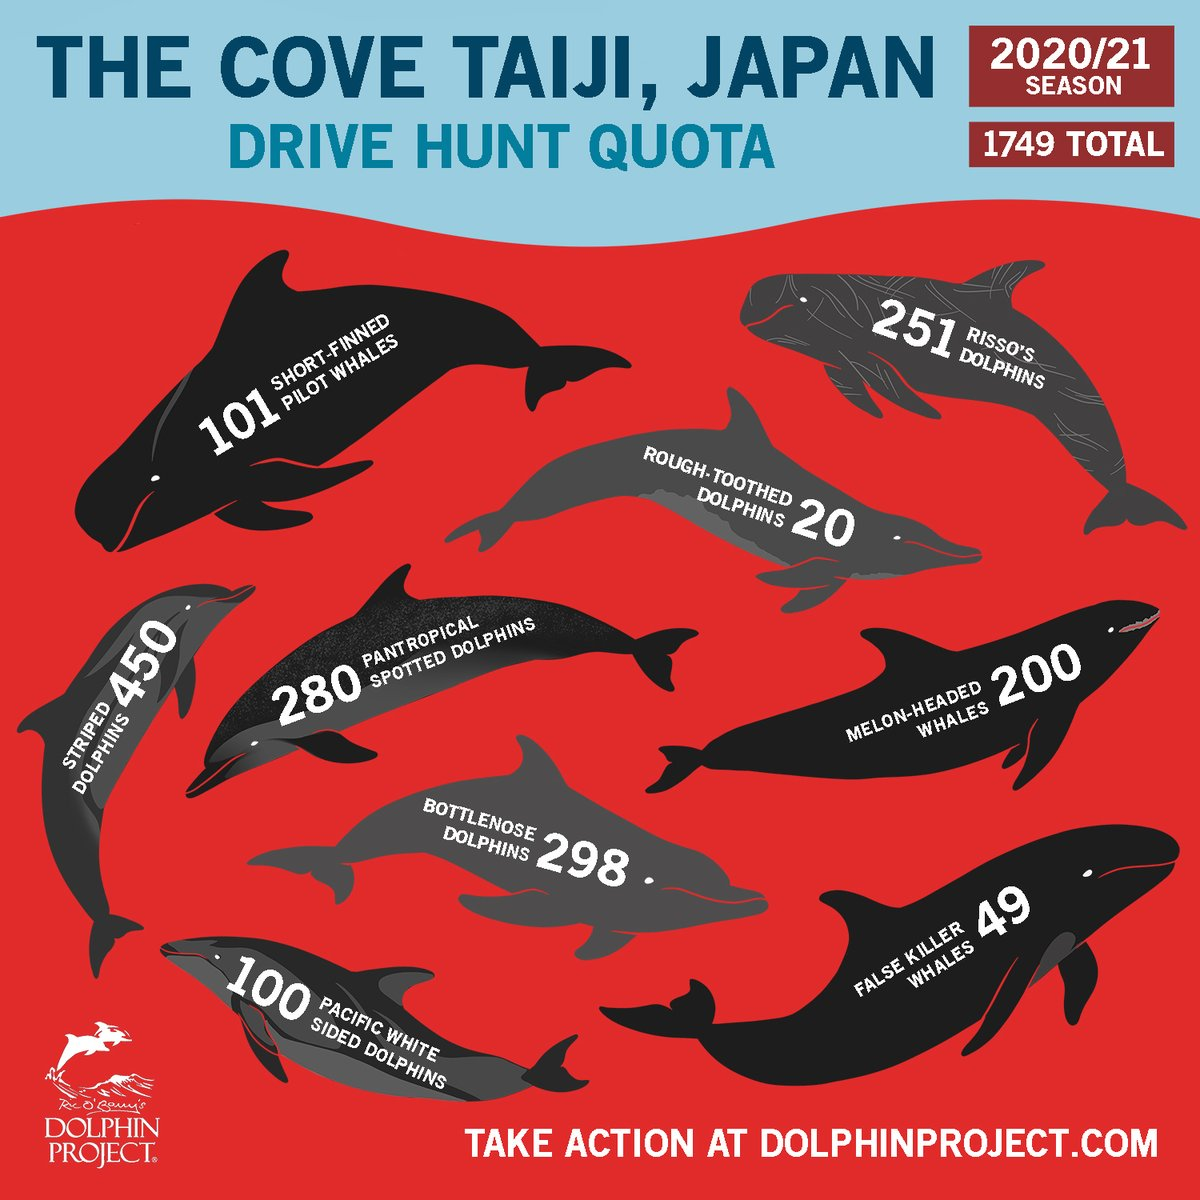 BREAKING: The quota for Taiji's drive hunt season has been released. TAKE ACTION:  #DolphinProject #TheCove